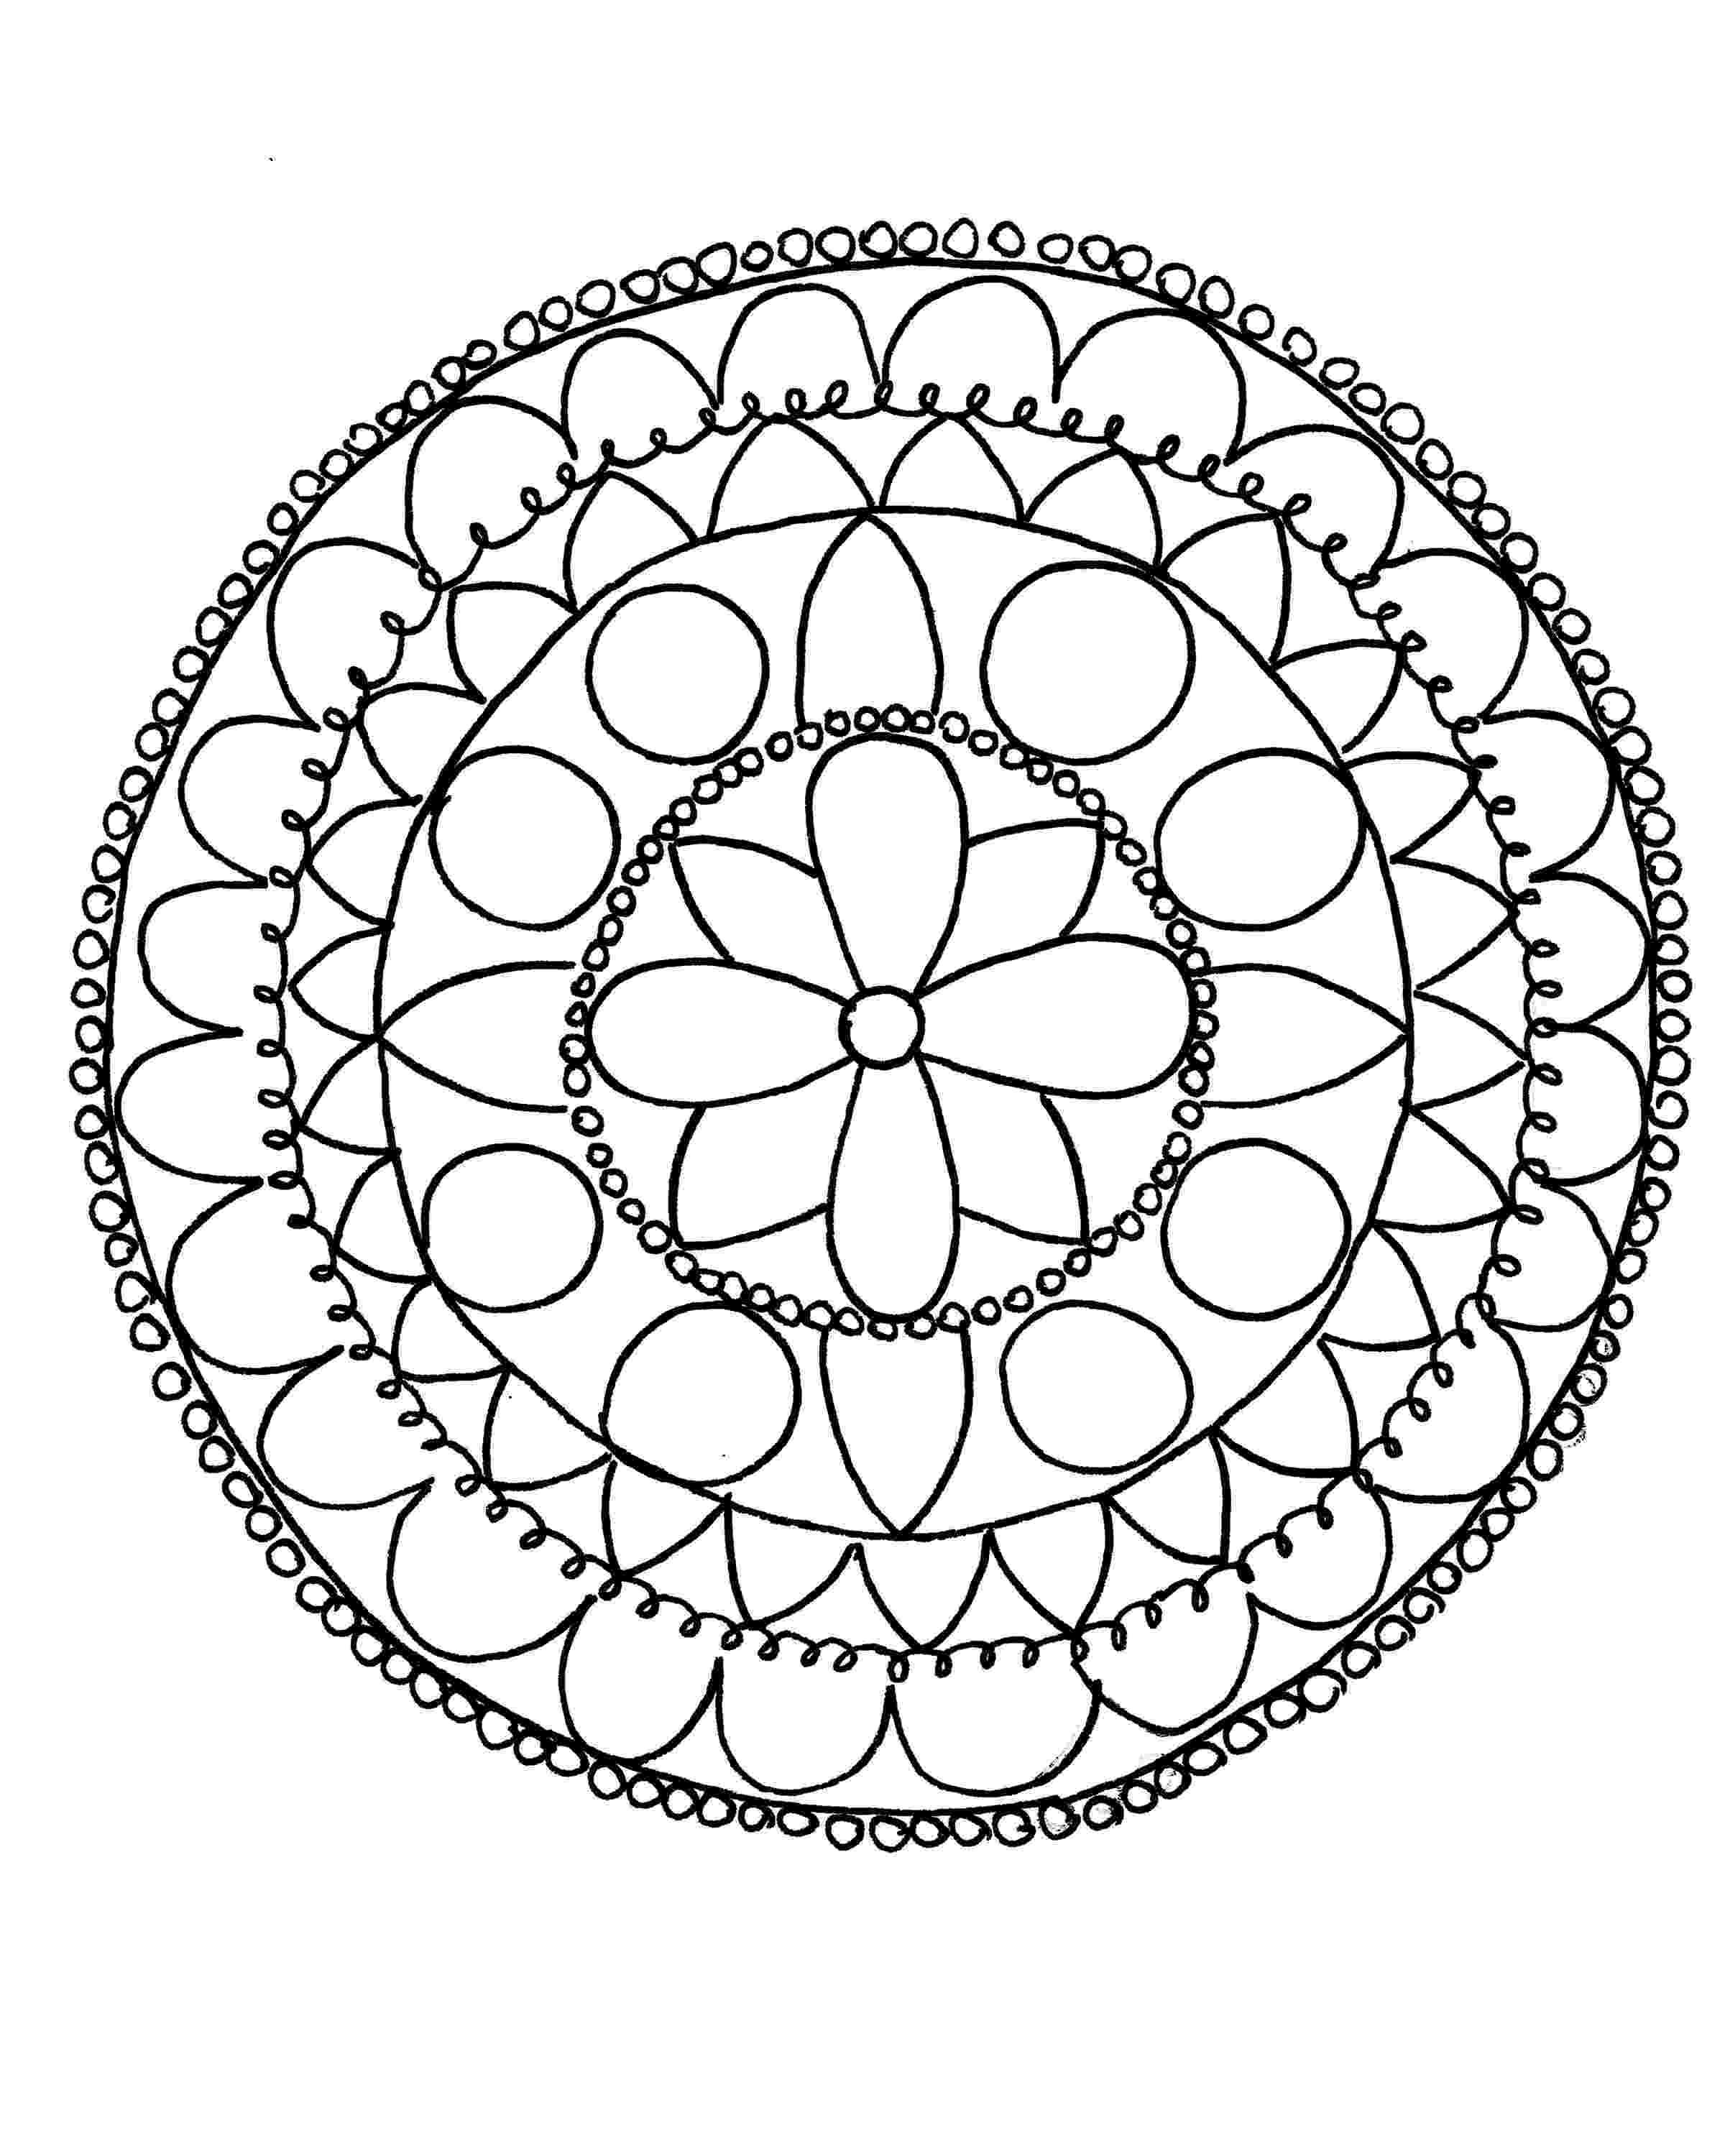 coloring books for stress relief stress relief drawing at getdrawingscom free for coloring stress relief for books